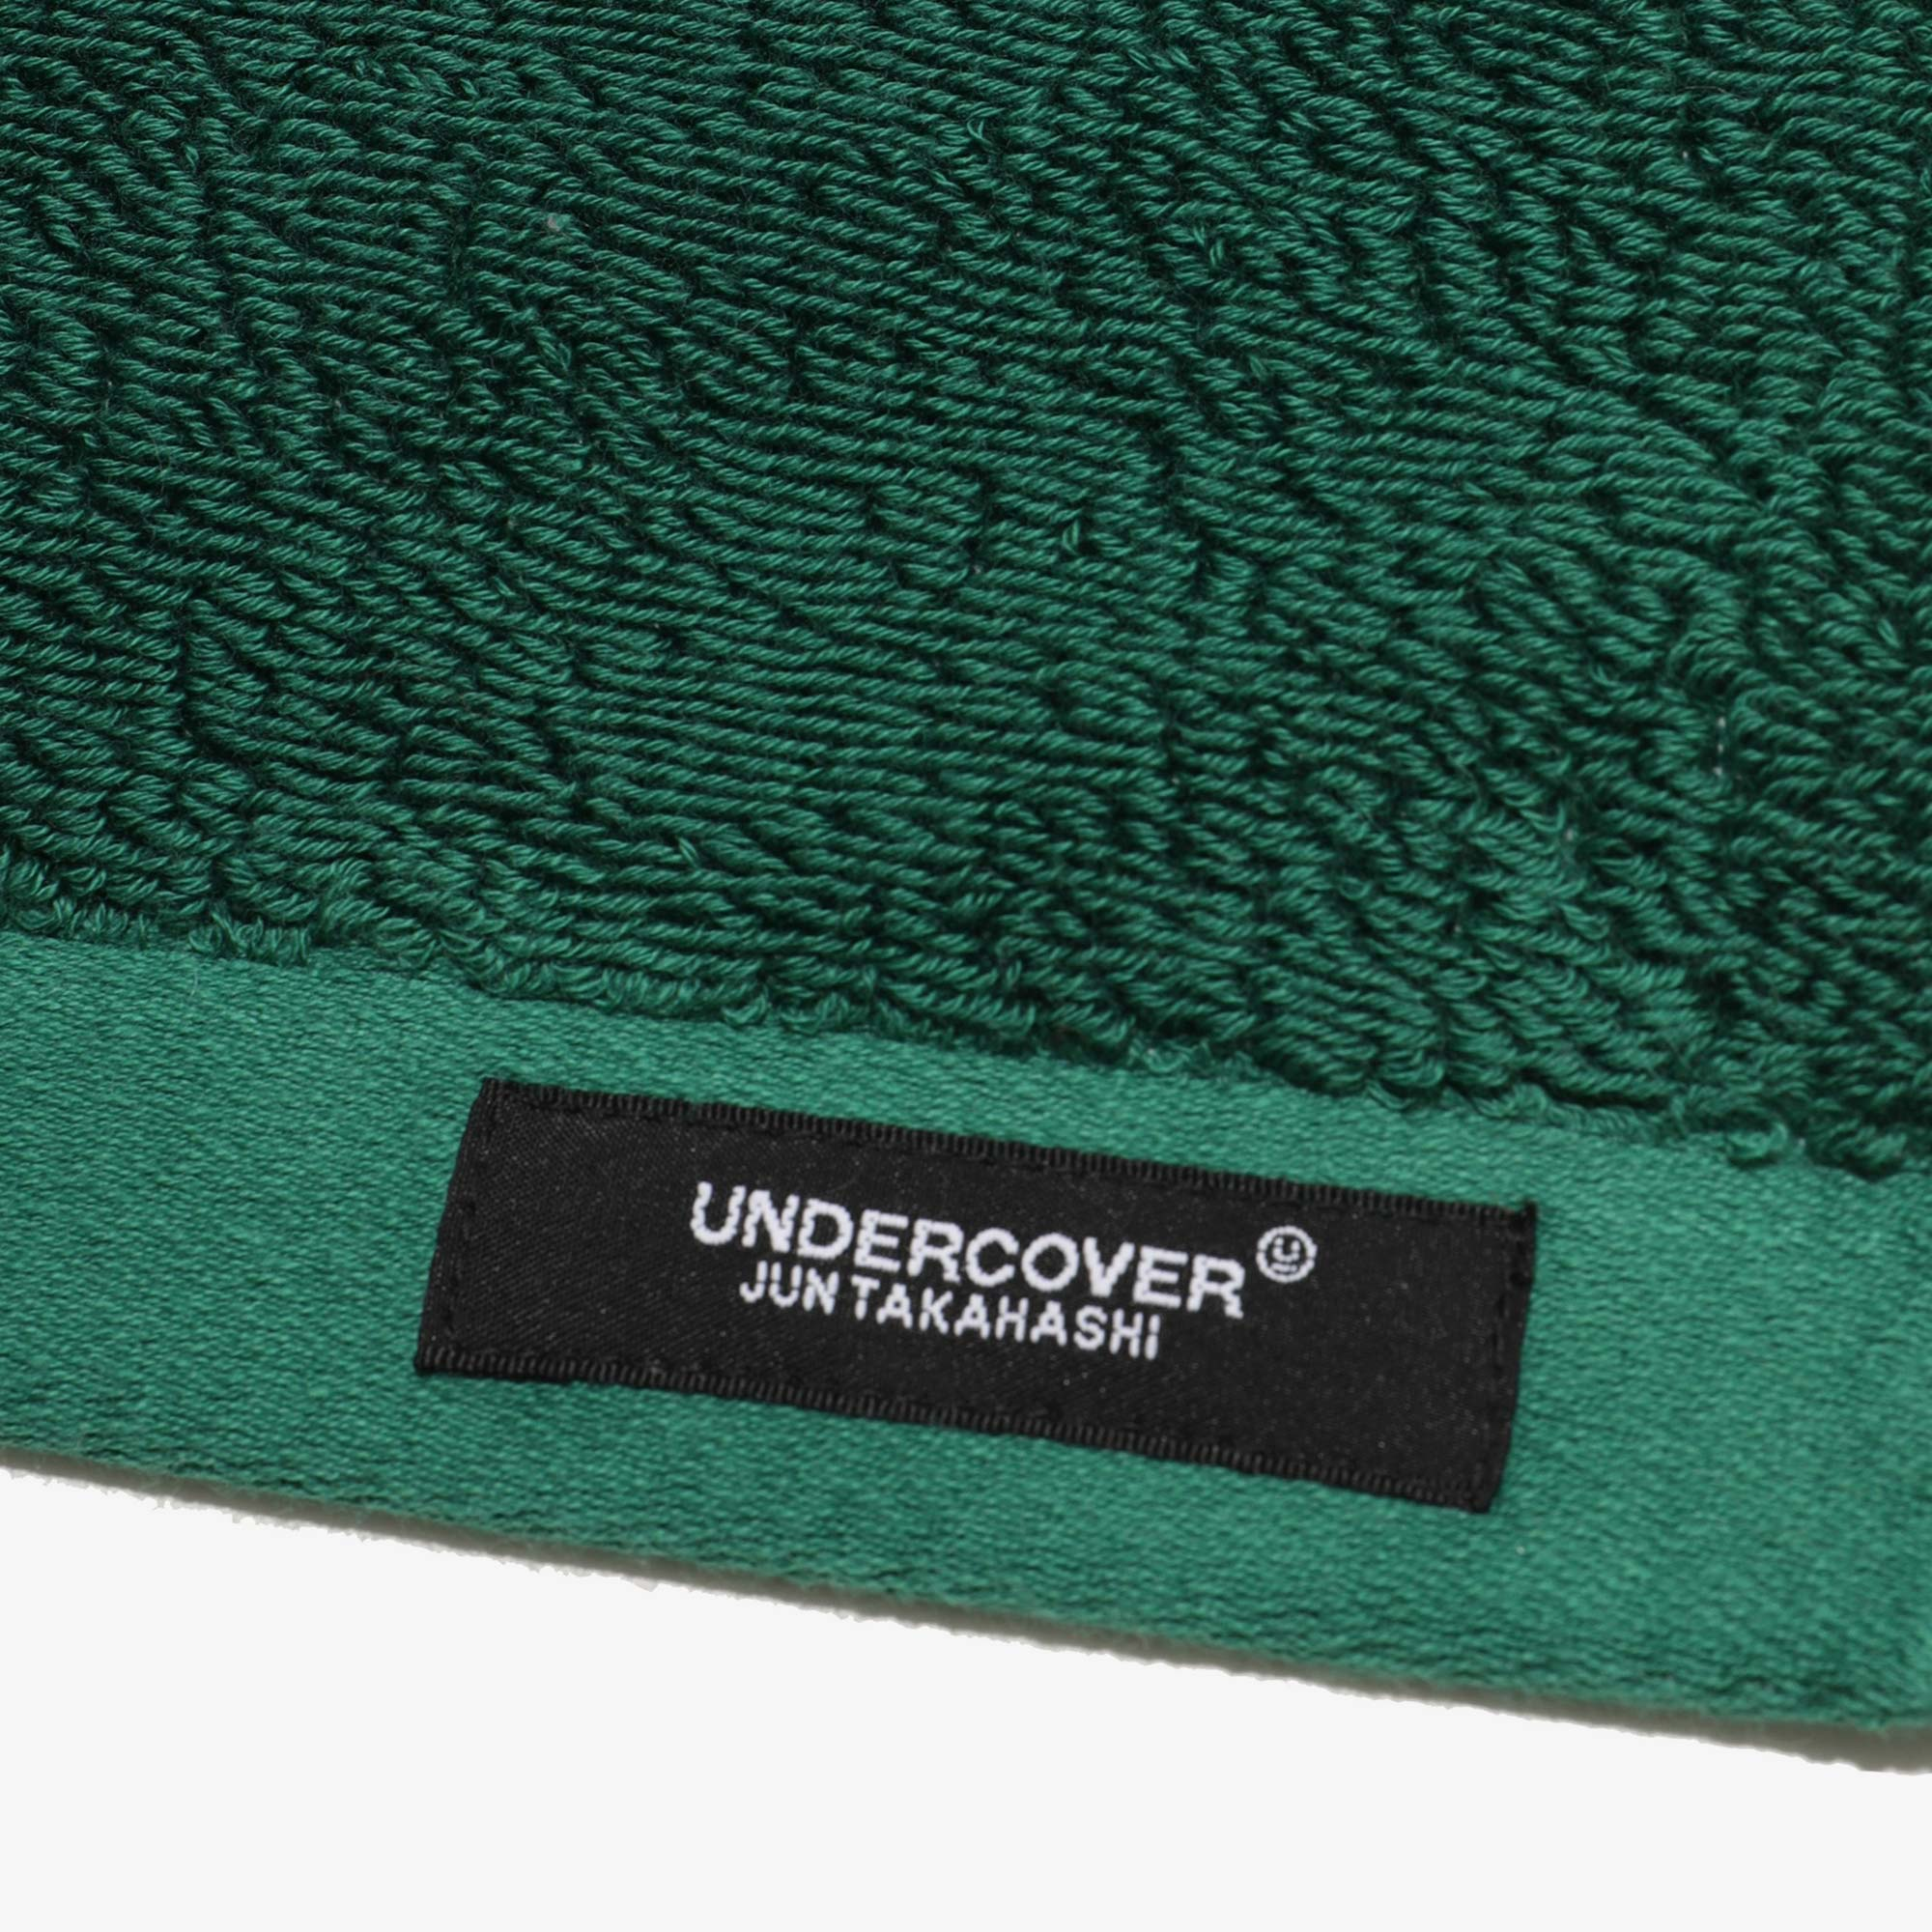 Undercover New Noise Face Towel UC1A4M03-2 - Green 3